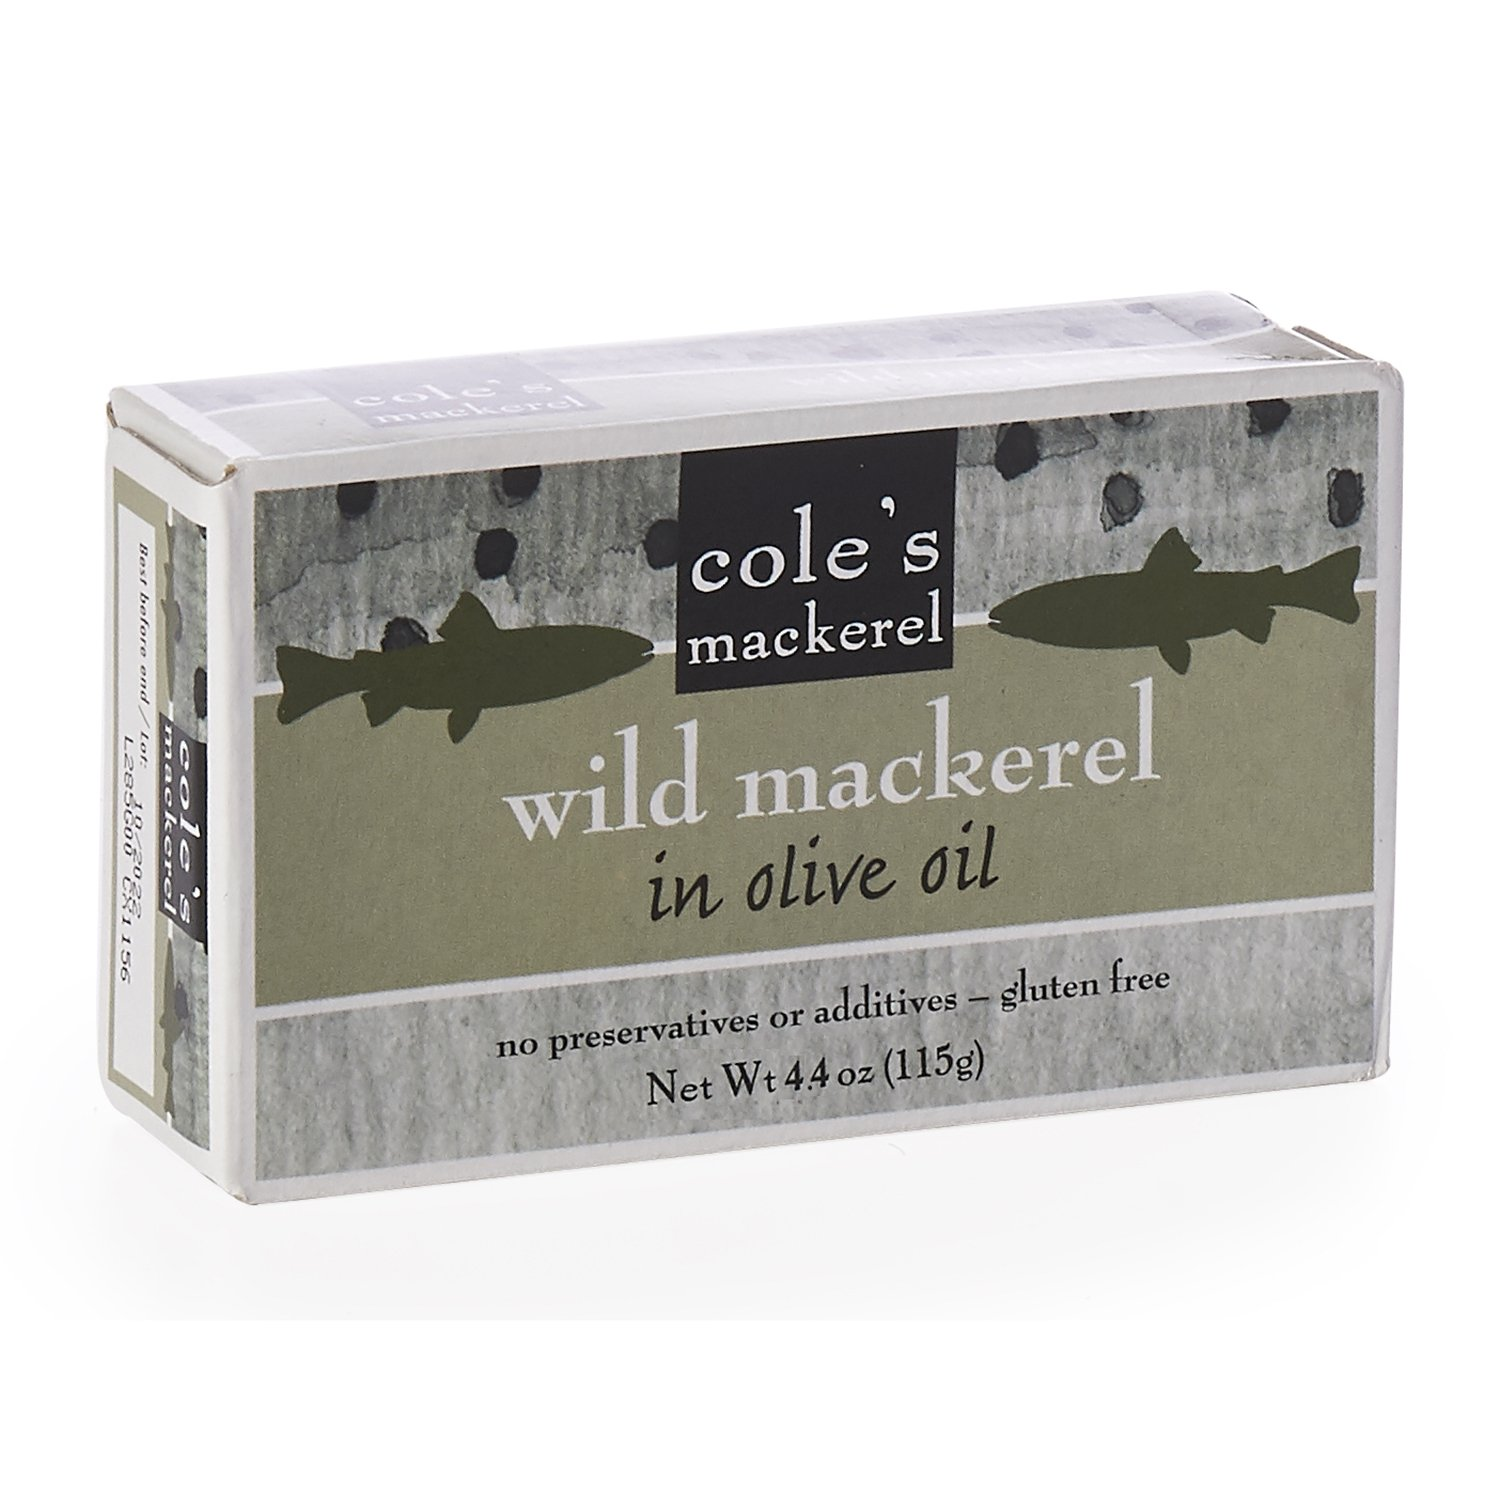 COLES MACKEREL OLIVE OIL, 4.4 OZ (pack of 10)